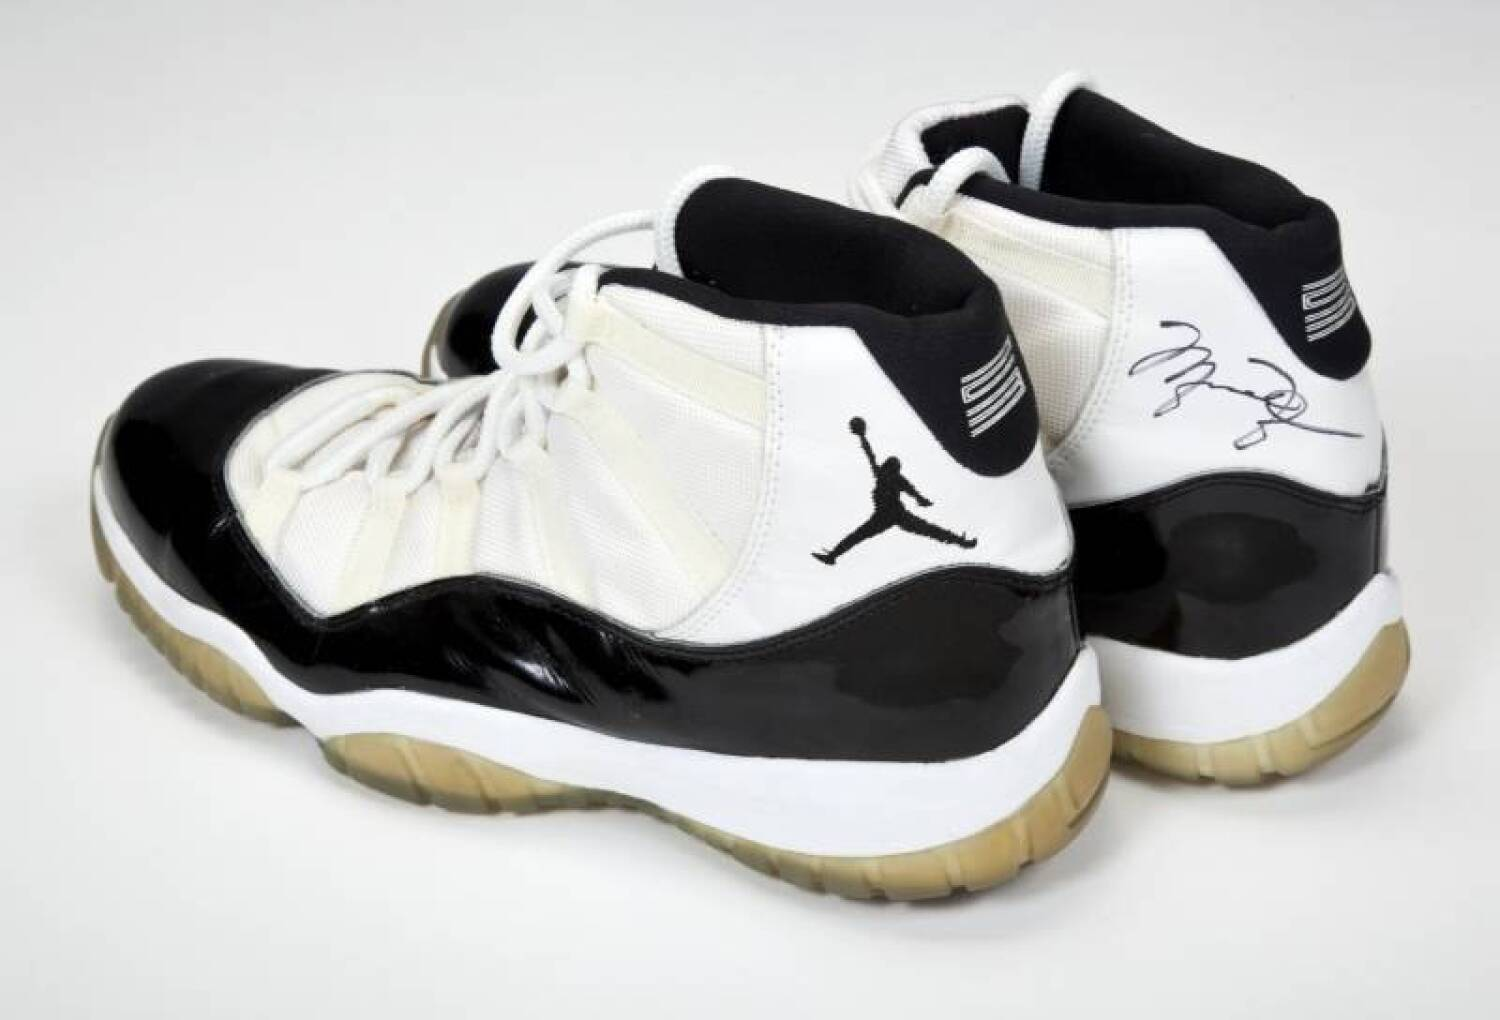 huge discount 1f8fe 51c5f MICHAEL JORDAN 1995-96 GAME WORN AND SIGNED SHOES - Current ...